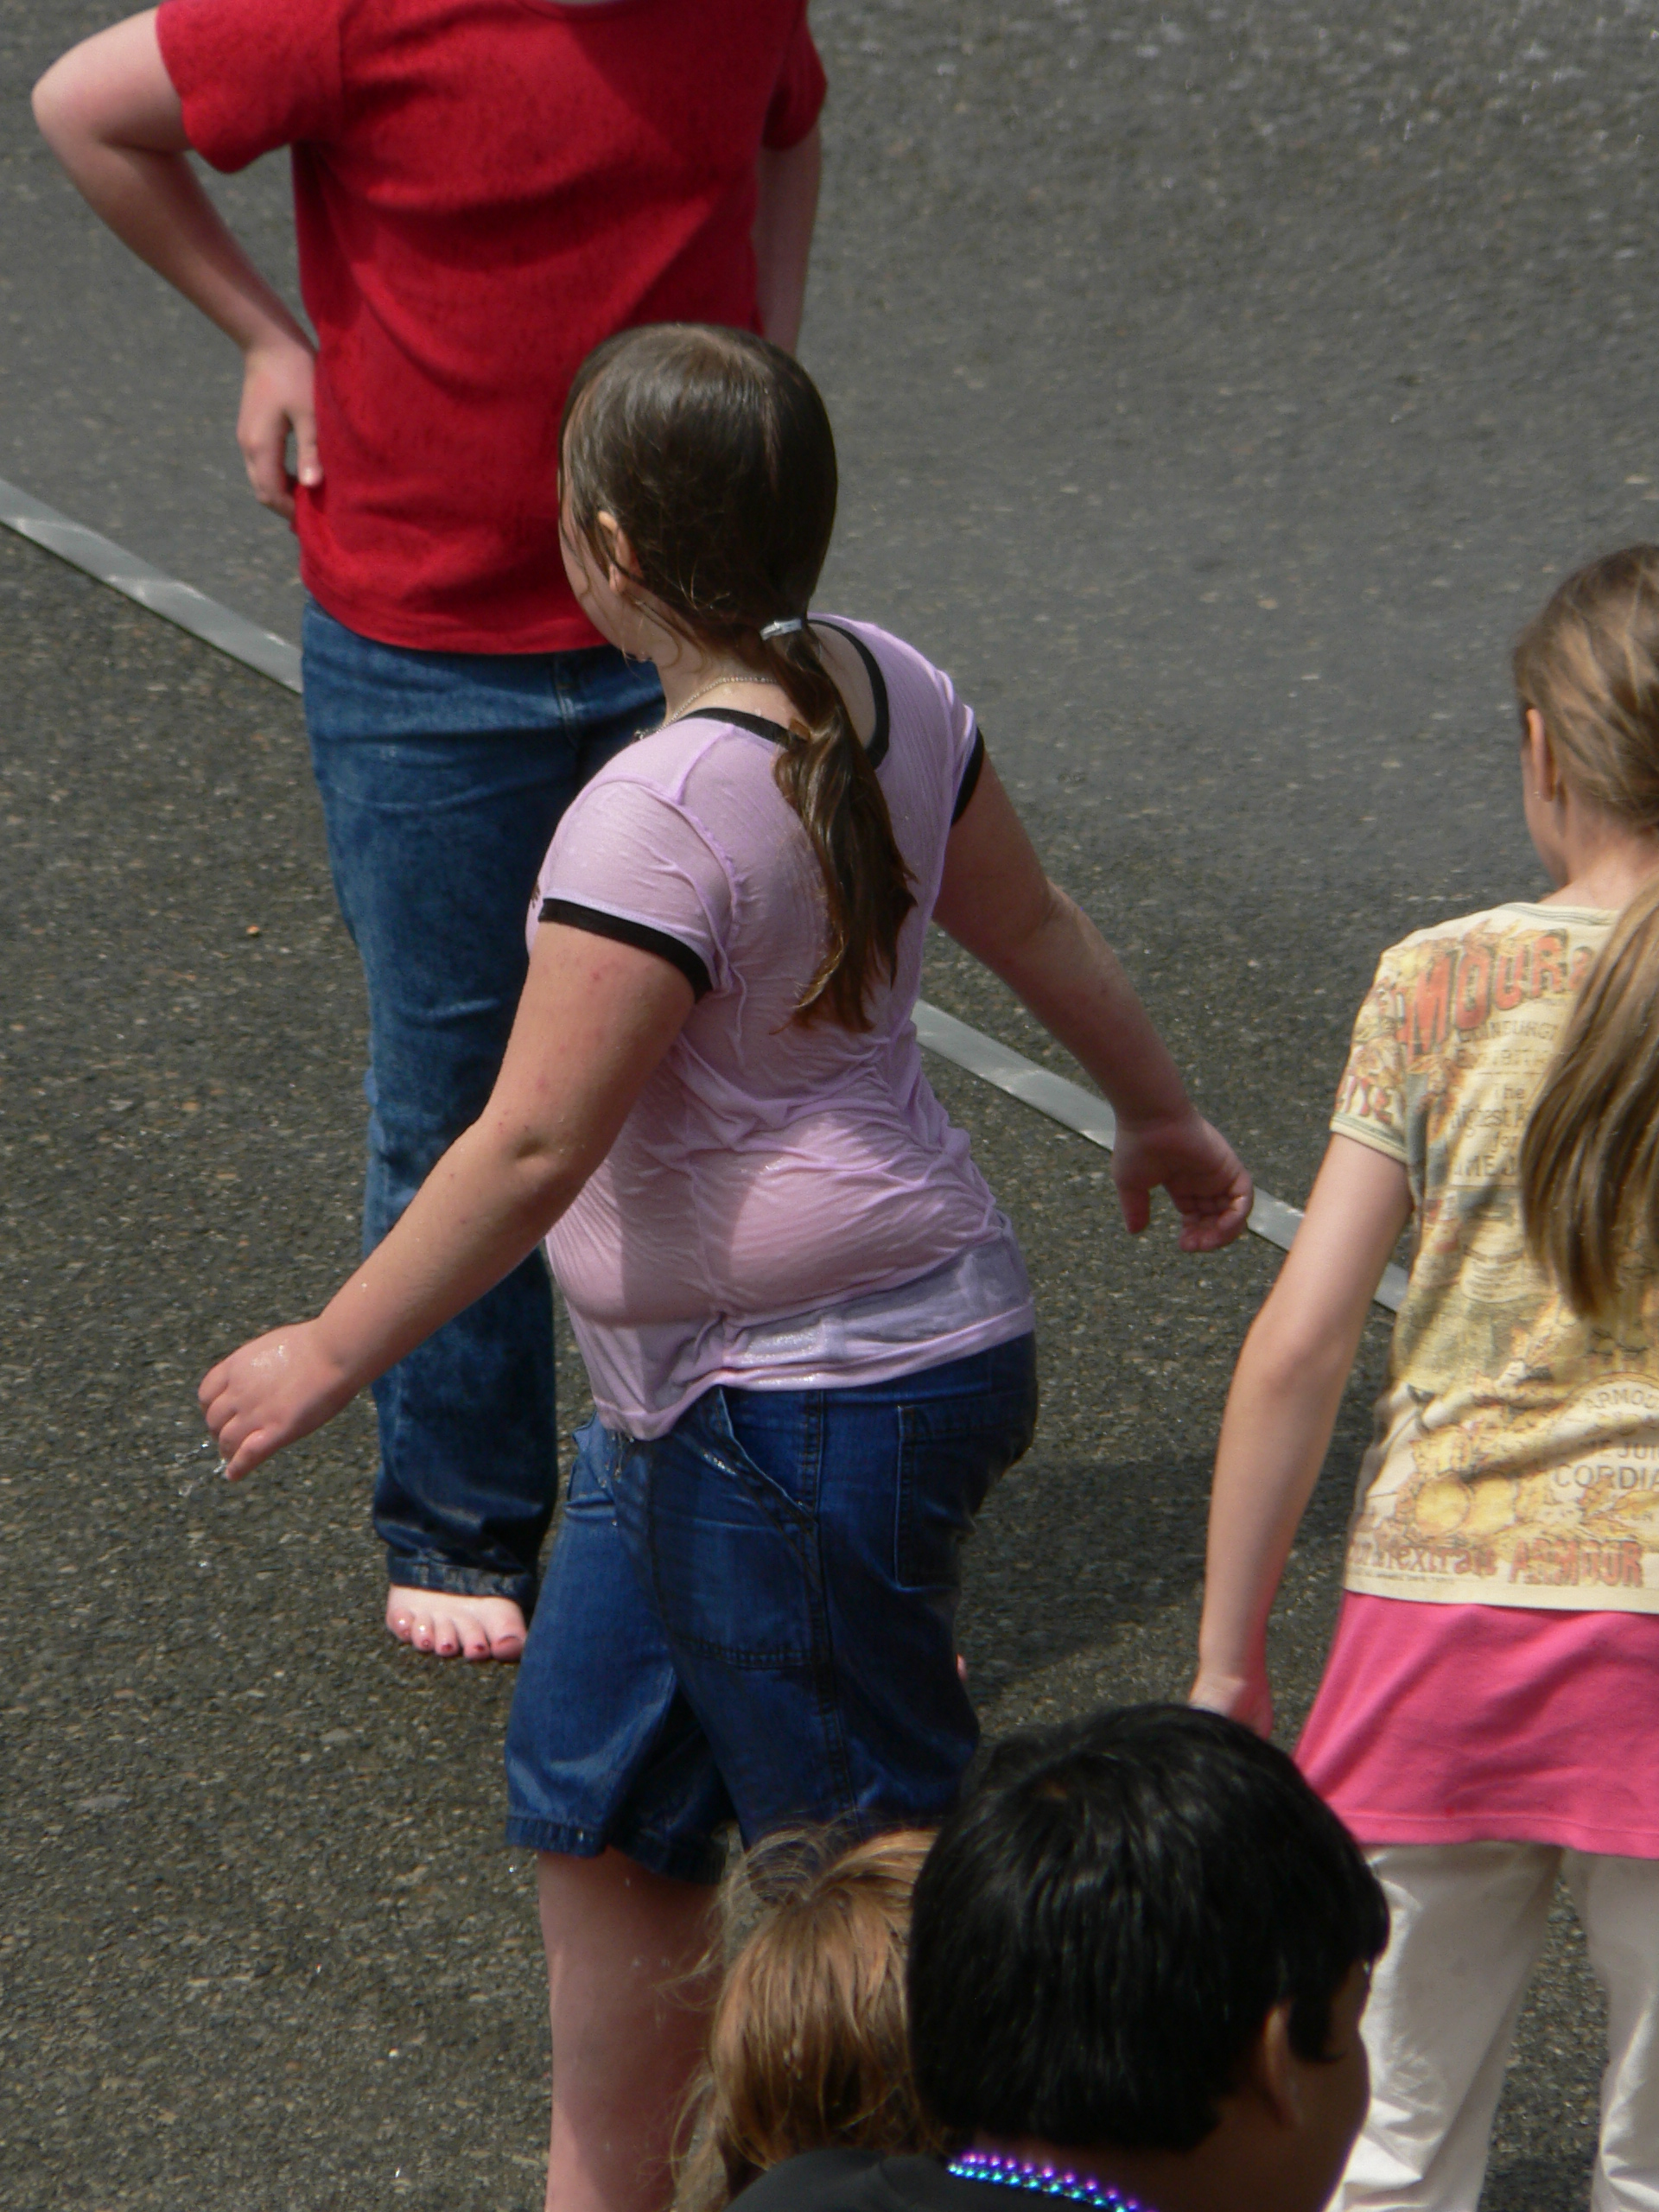 child hood obesity Fast-food consumption and lack of exercise are just a couple of causes of childhood obesity get the facts on childhood obesity prevention, treatment, statistics.